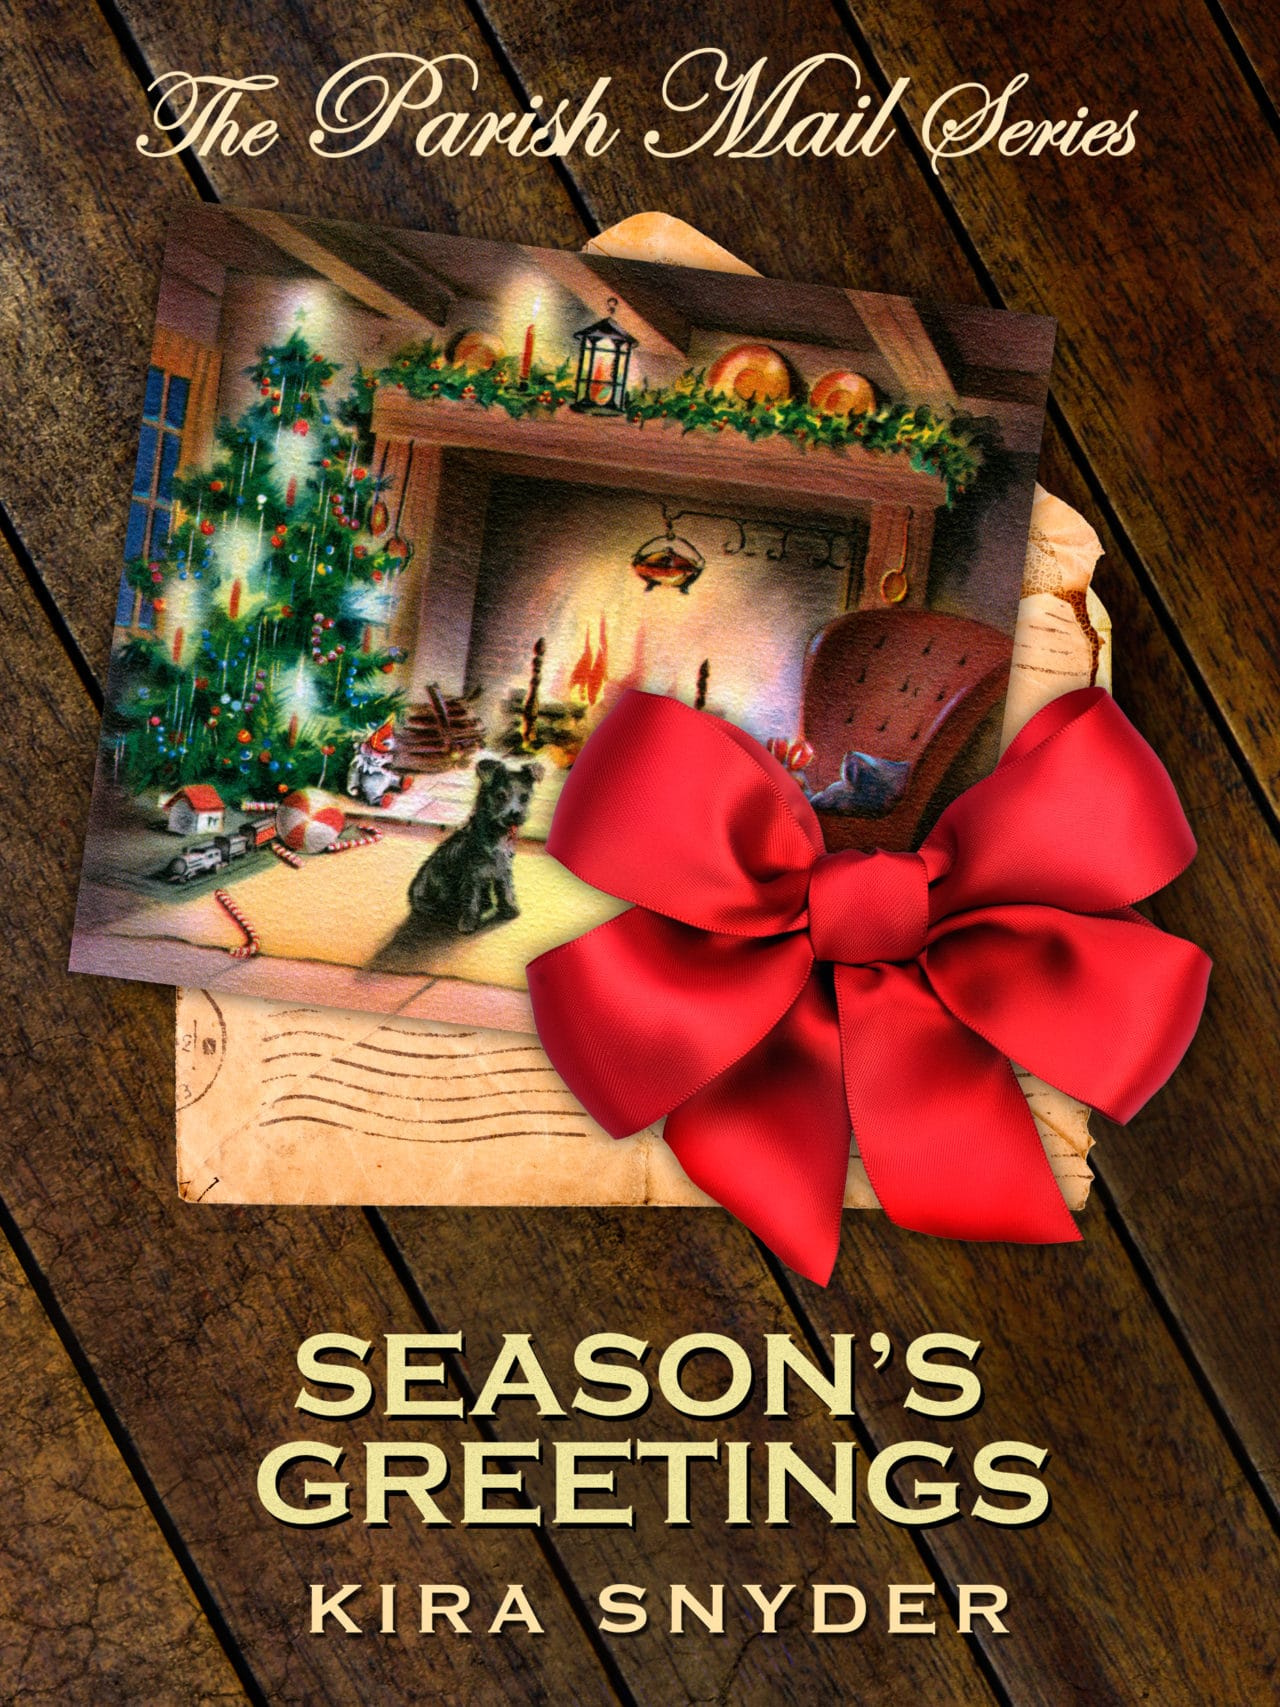 Book Review and a Giveaway: Season's Greetings, A Parish Mail Short